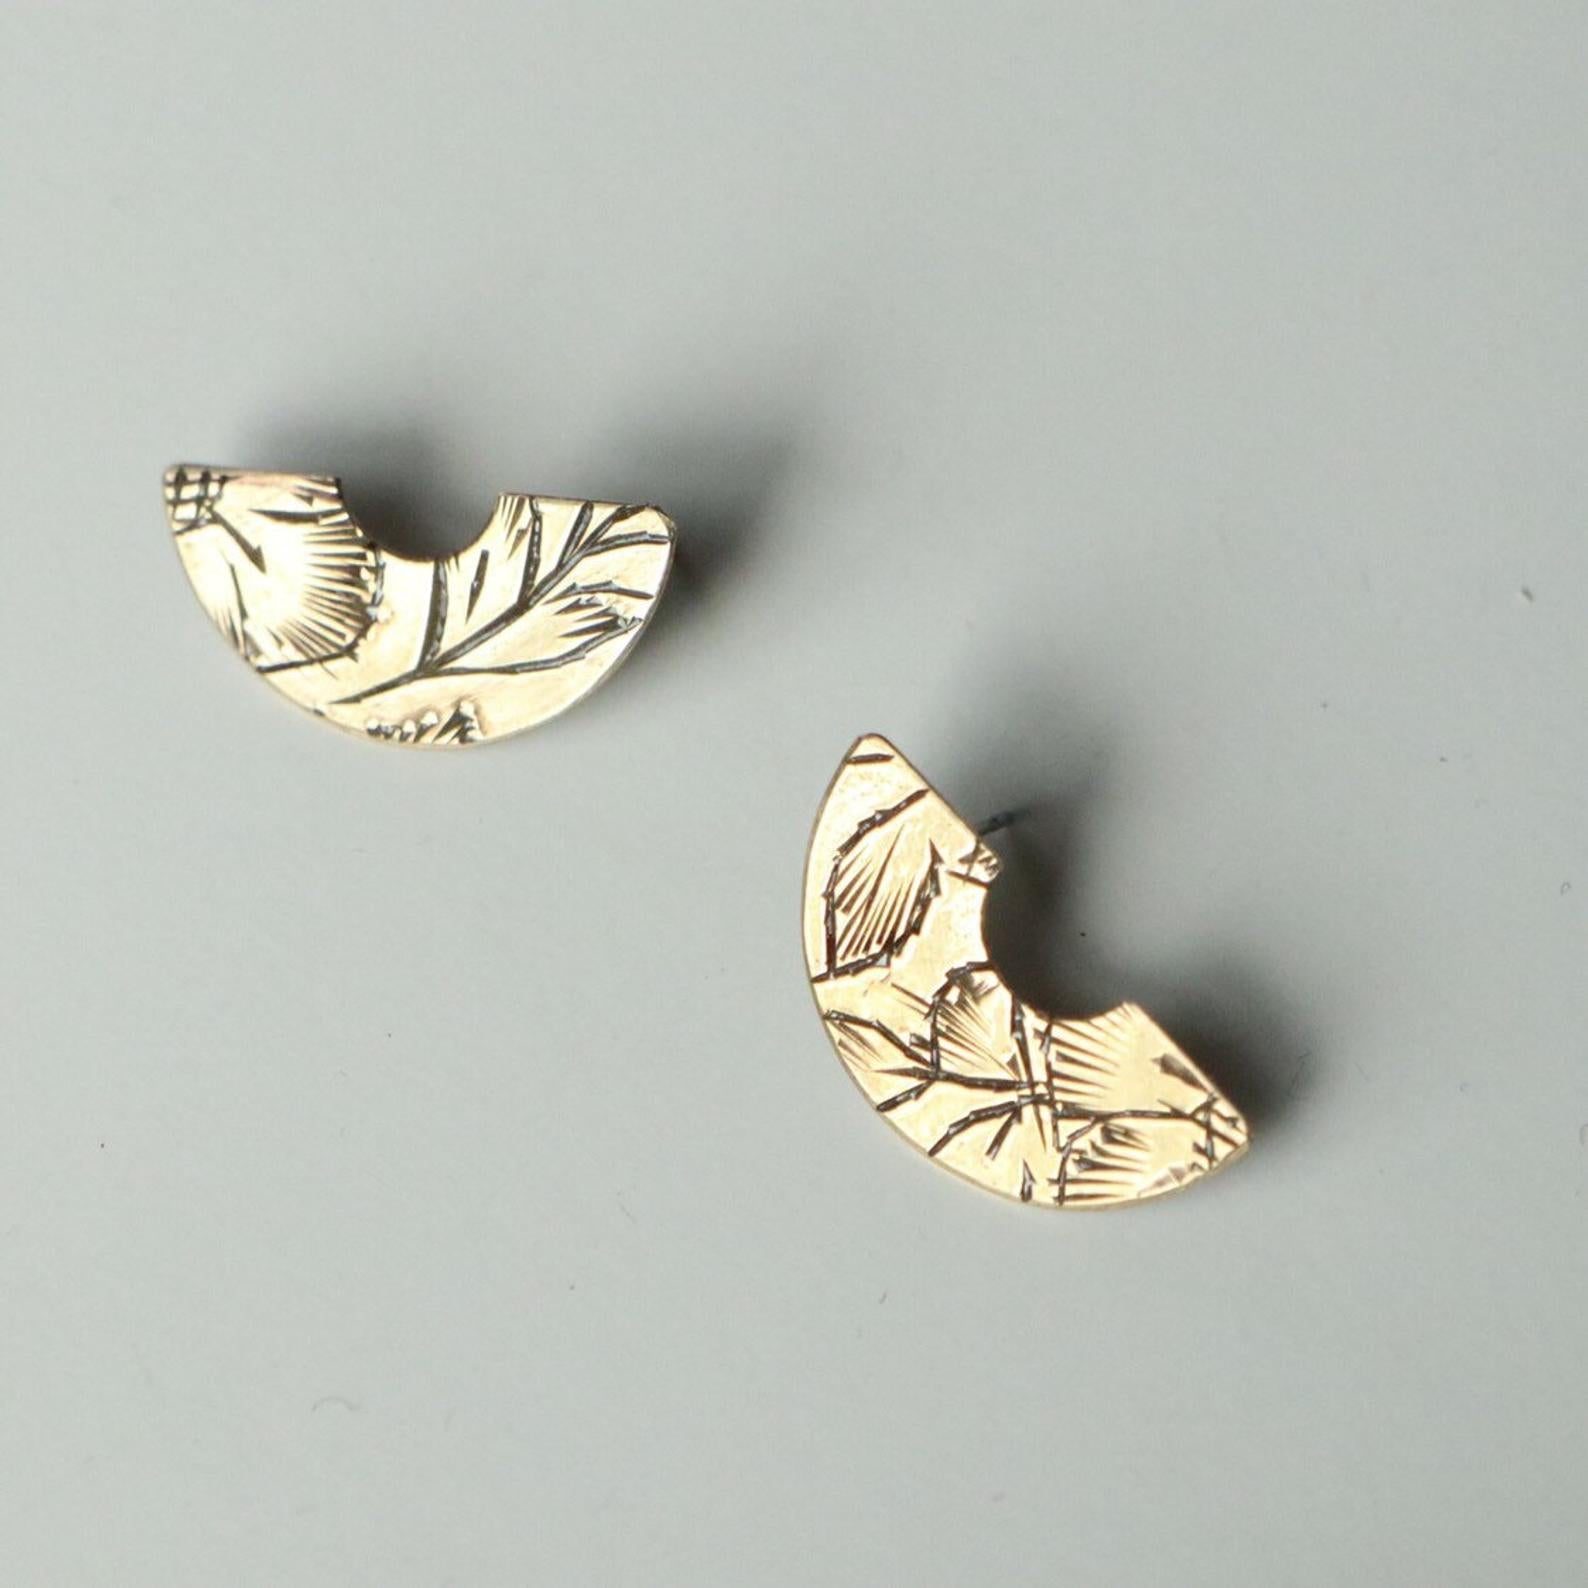 Souvenir Handmade Vintage Brass Arch Studs No Two Alike Unique